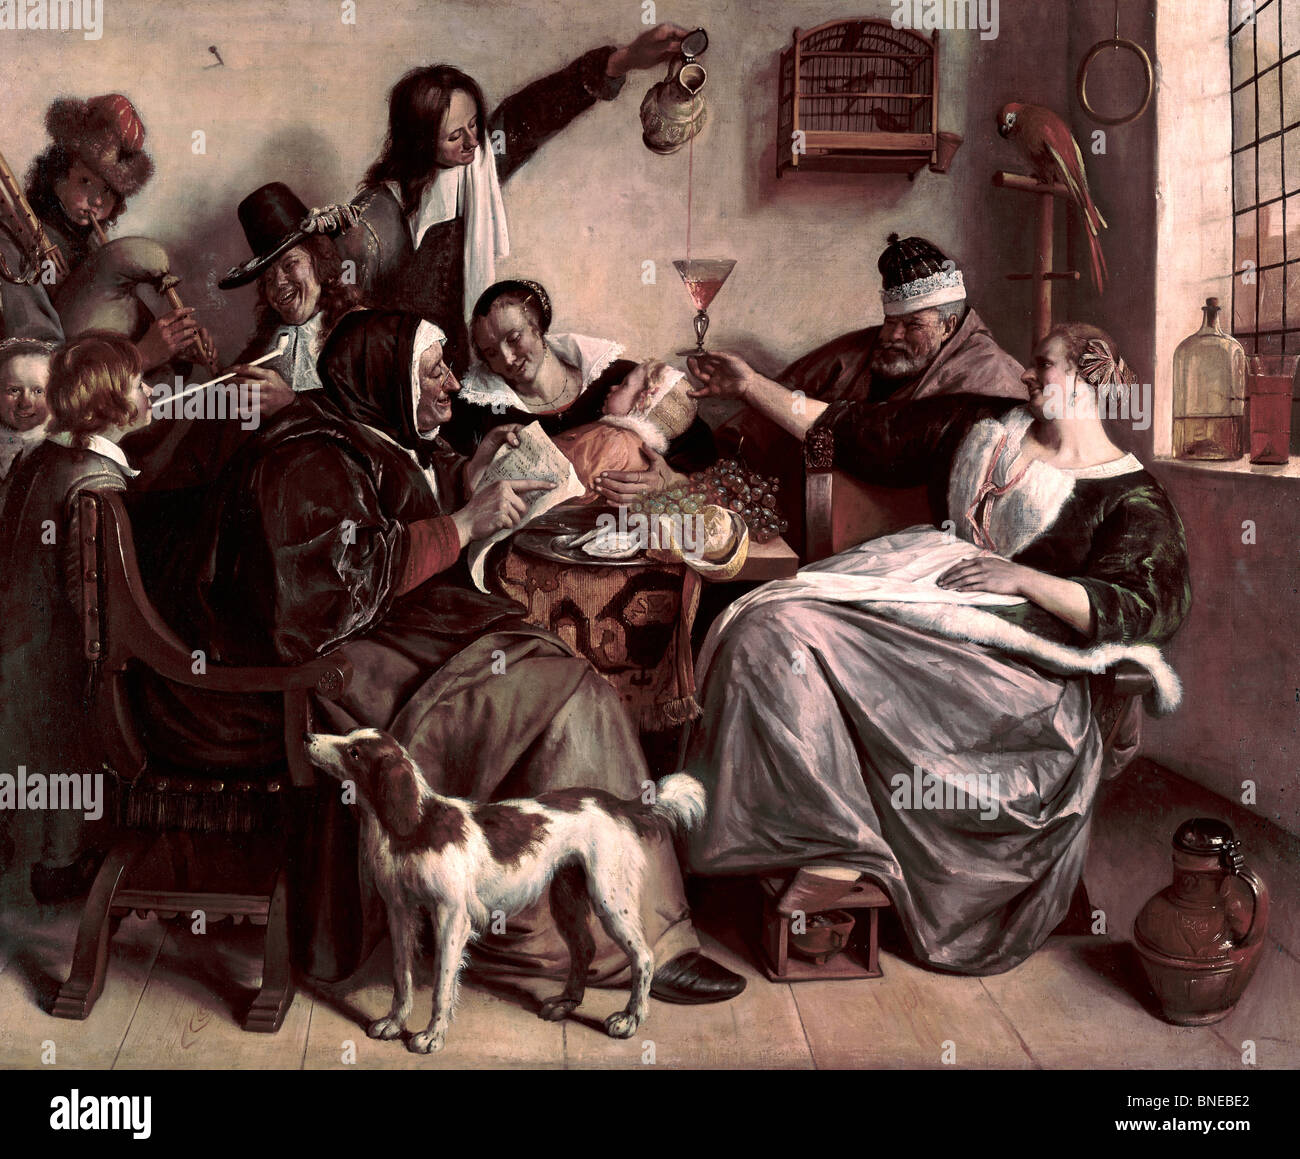 Merry Company by Jan Steen, (1626-1679)